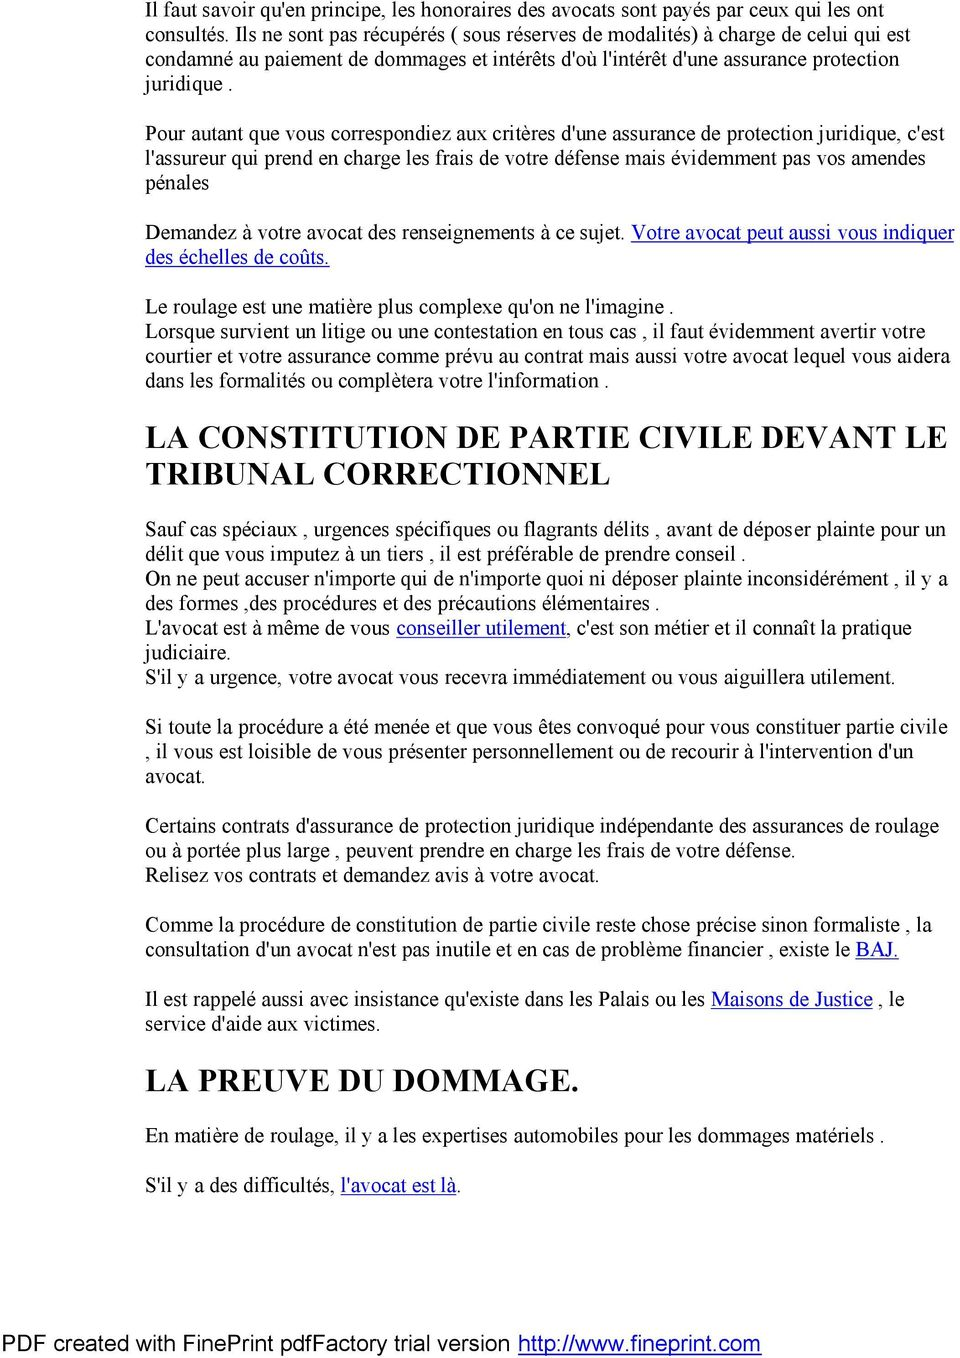 la constitution de partie civile dans un proces penal pdf. Black Bedroom Furniture Sets. Home Design Ideas